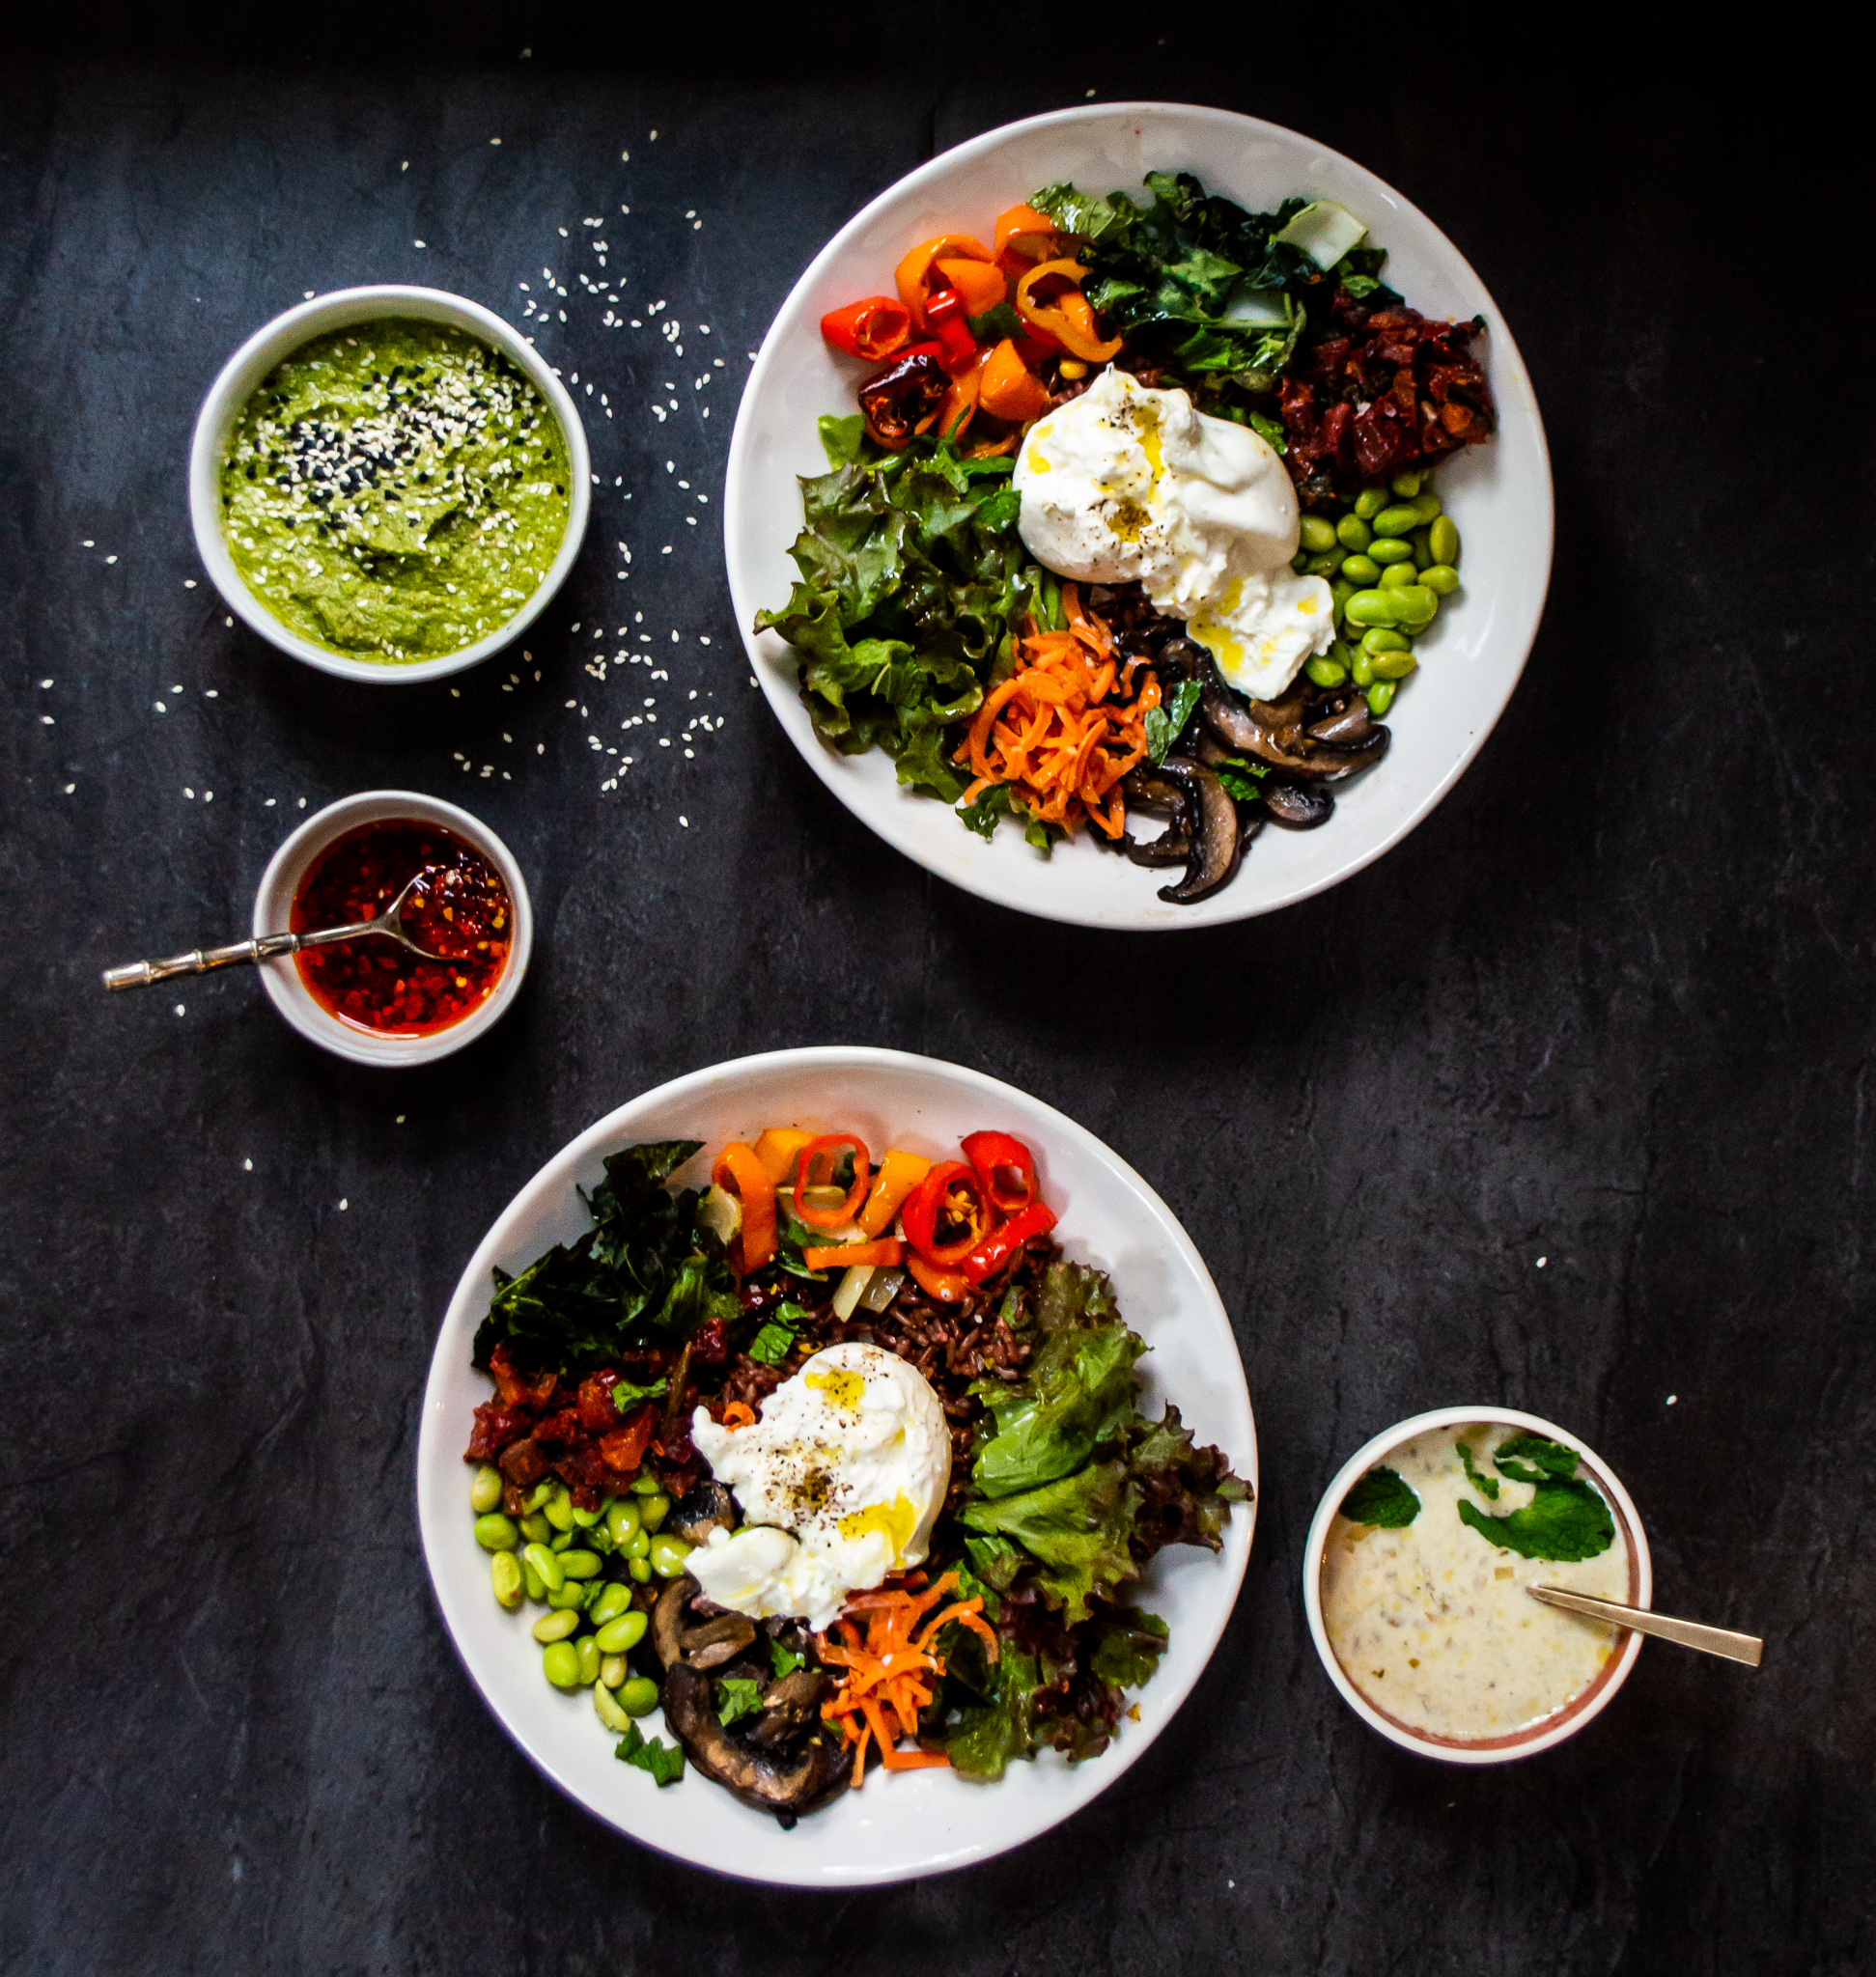 Pretty sure that the burrata is balanced by all those green vegetables, don't you think?